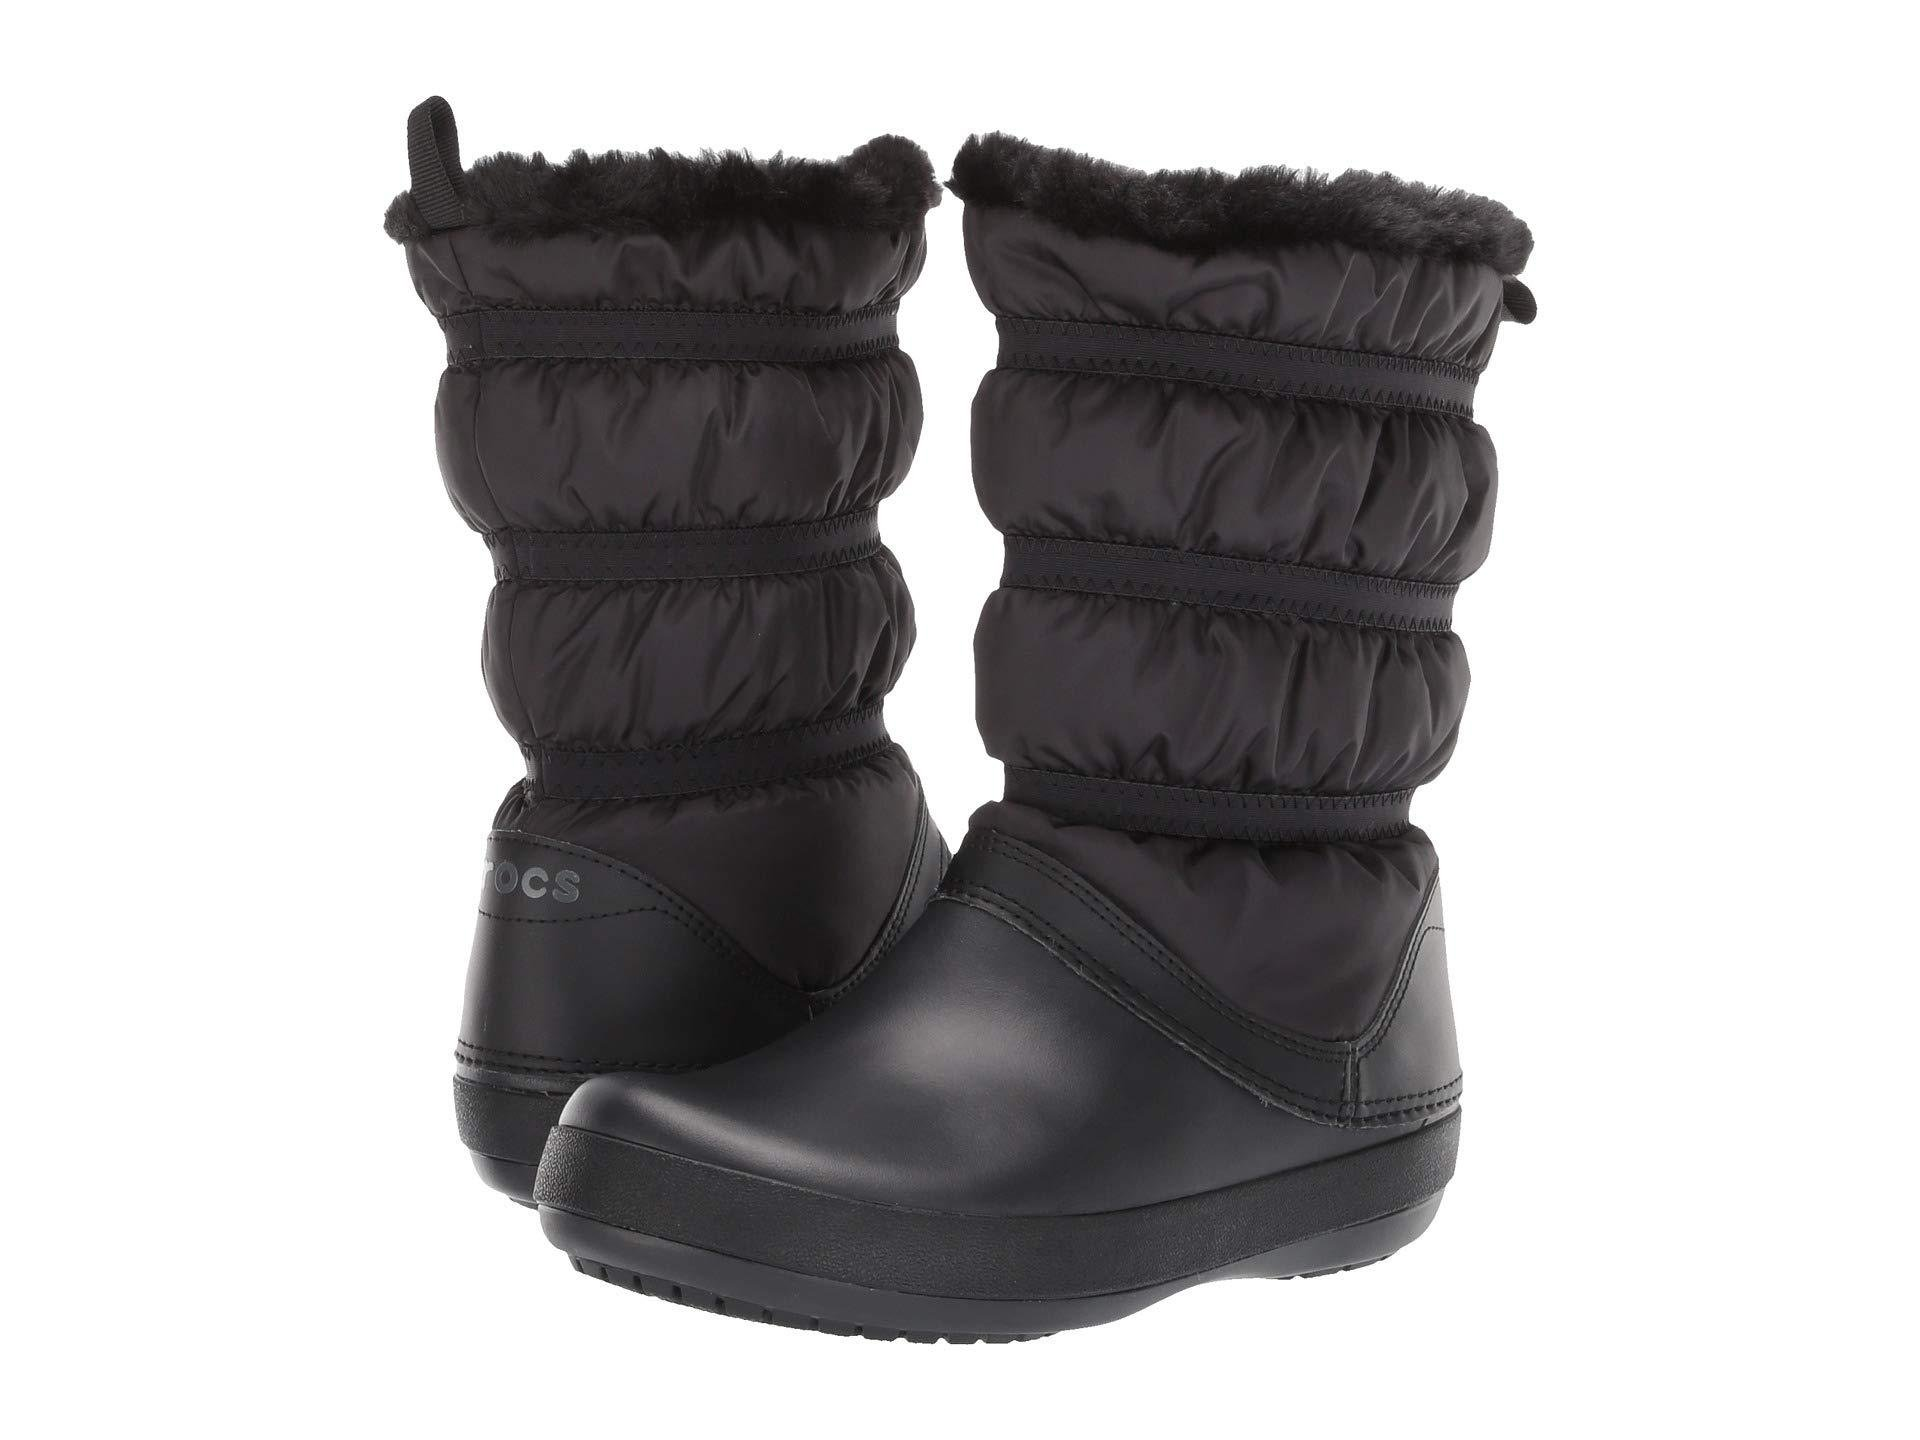 3064ec9681426 Lyst - Crocs™ Crocband Winter Boot in Black - Save 38%